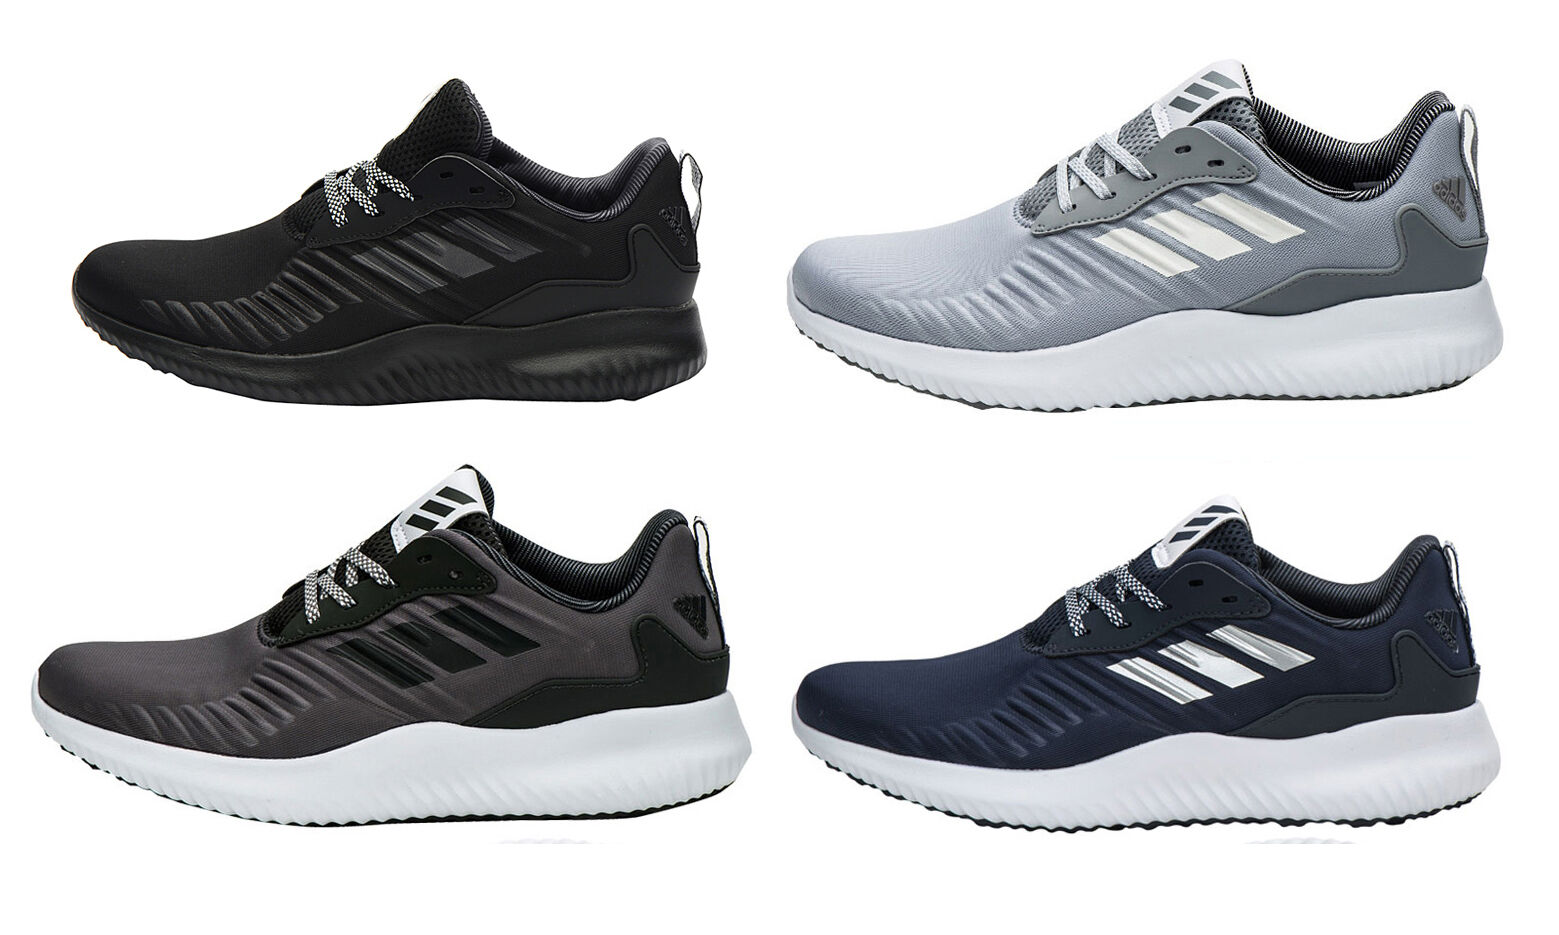 d52f35632 Adidas Alpha Bounce RC B42653 Running shoes Athletic Sneakers Runners  Boots. Reebok Men s Workout Plus Cross Trainer White ...